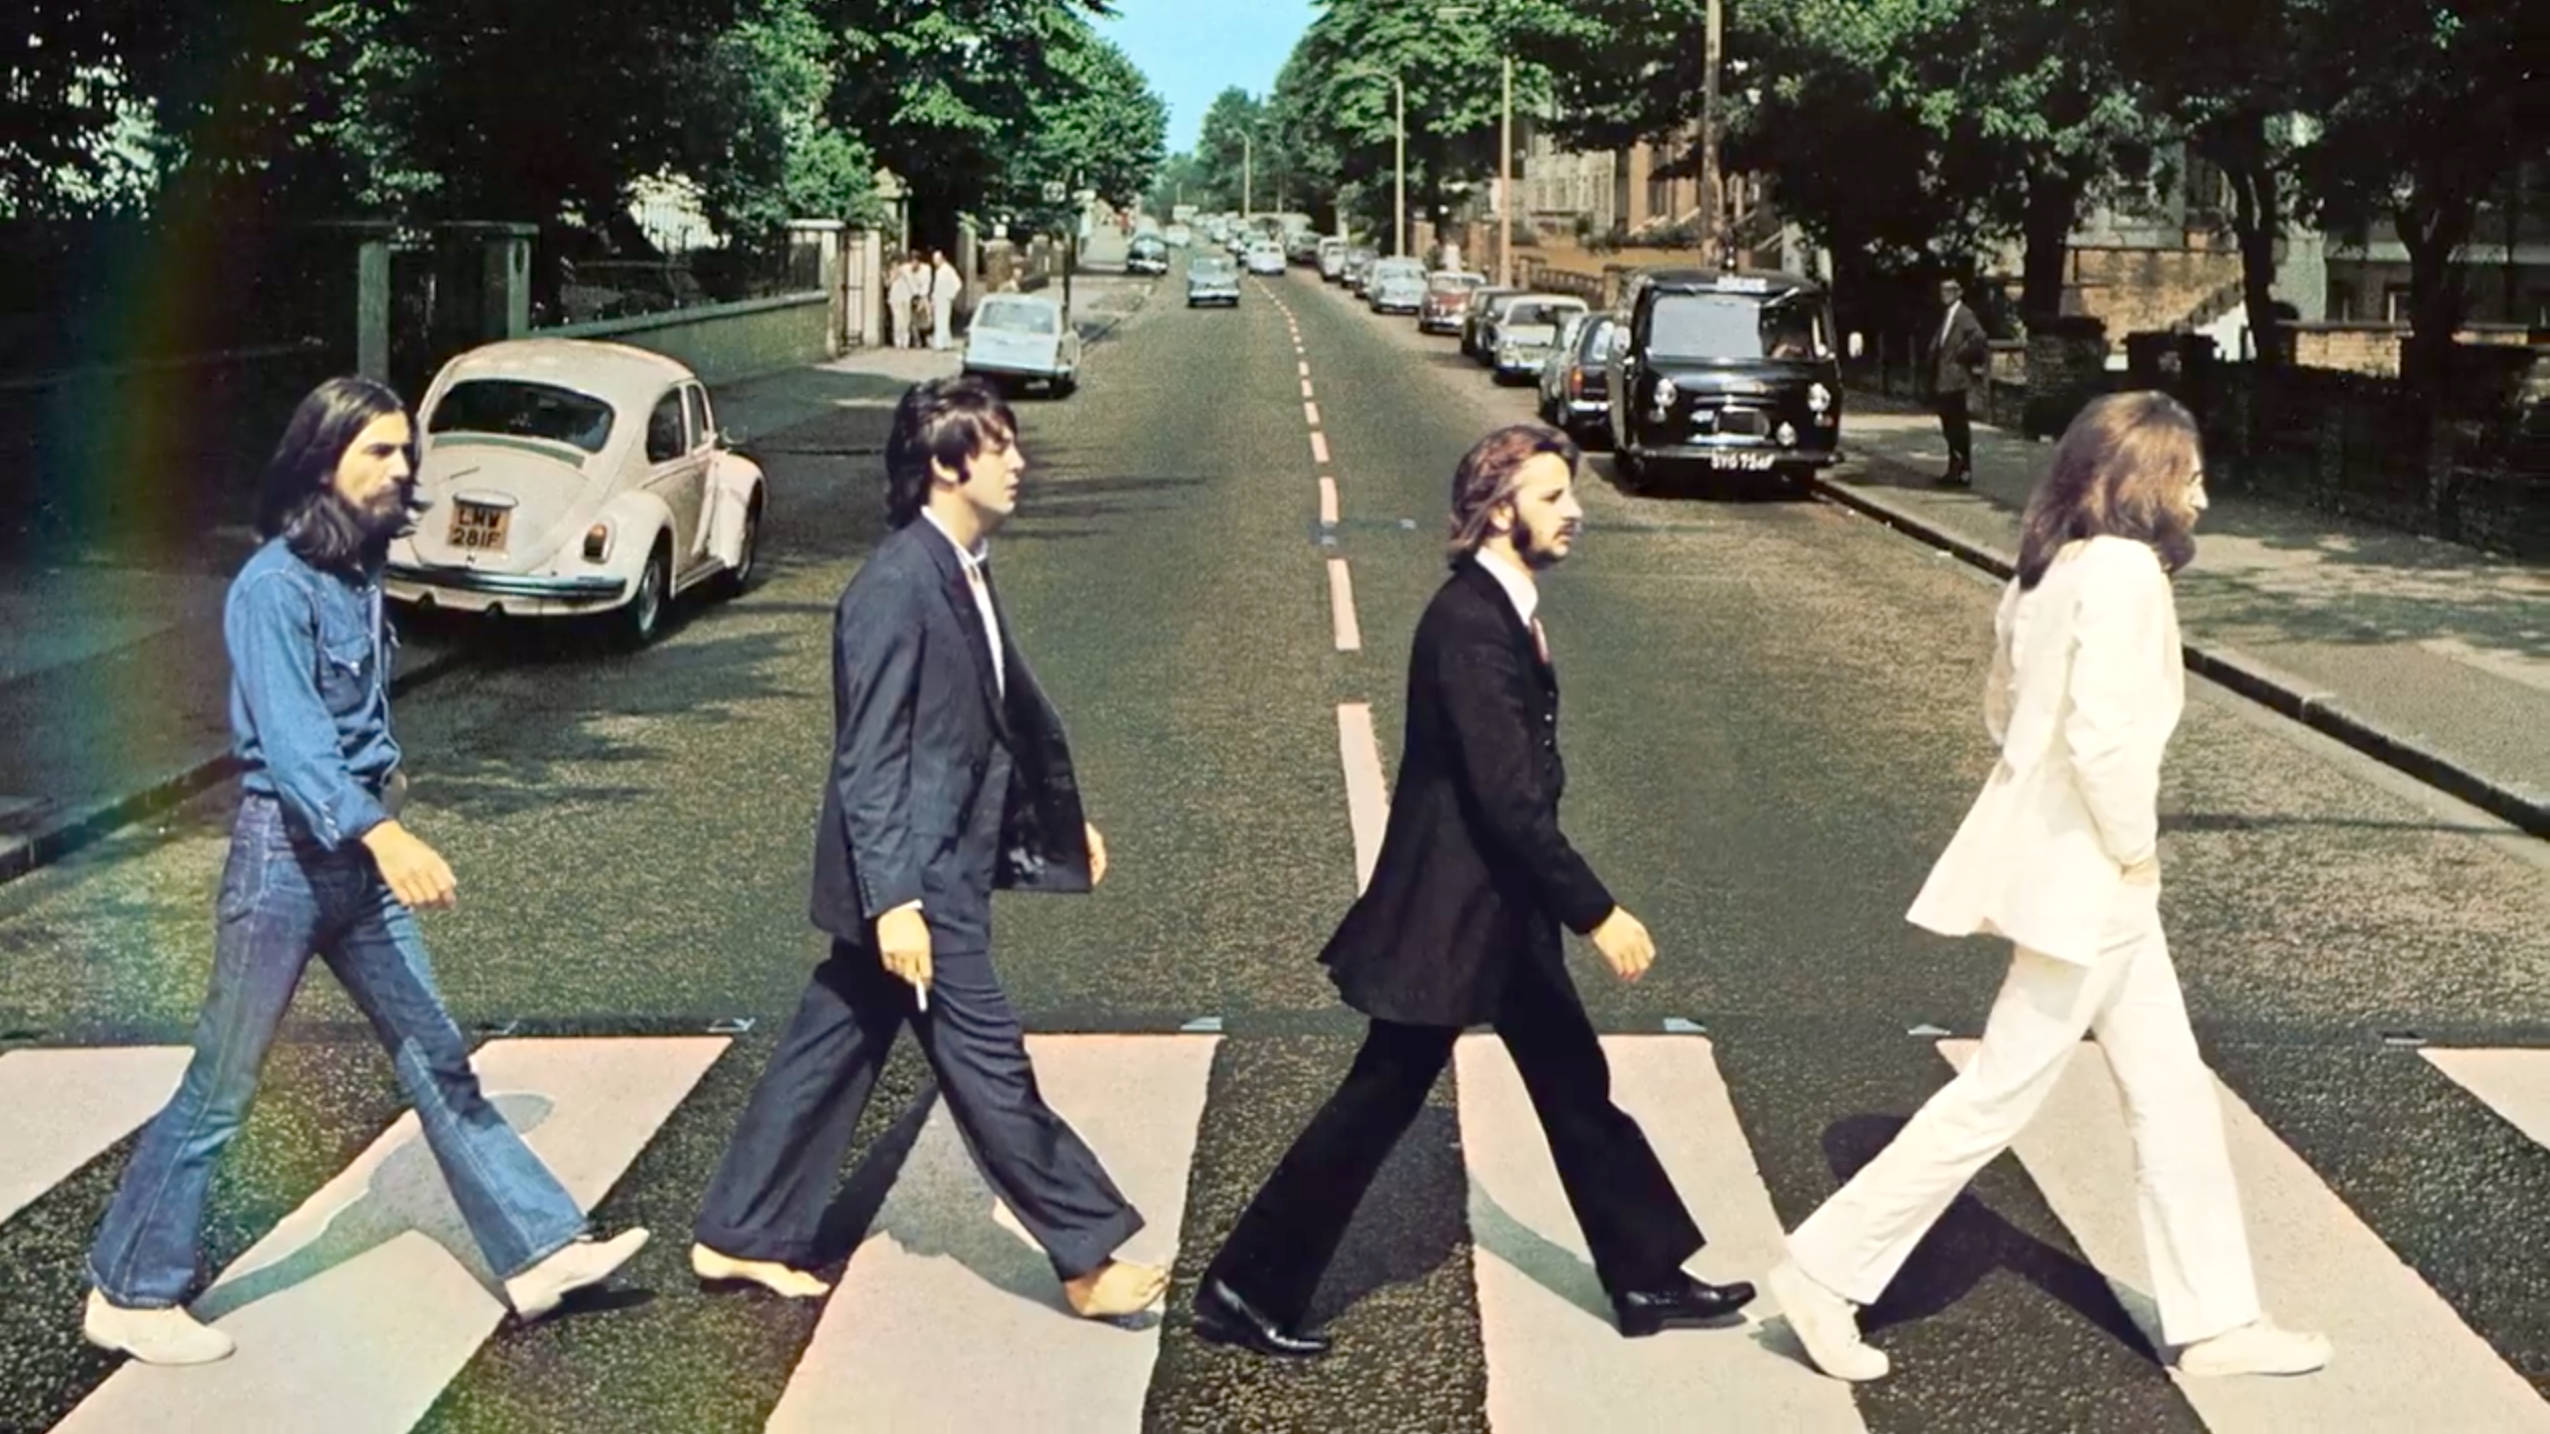 The Beatles' Abbey Road album is heading to number one after 50 years